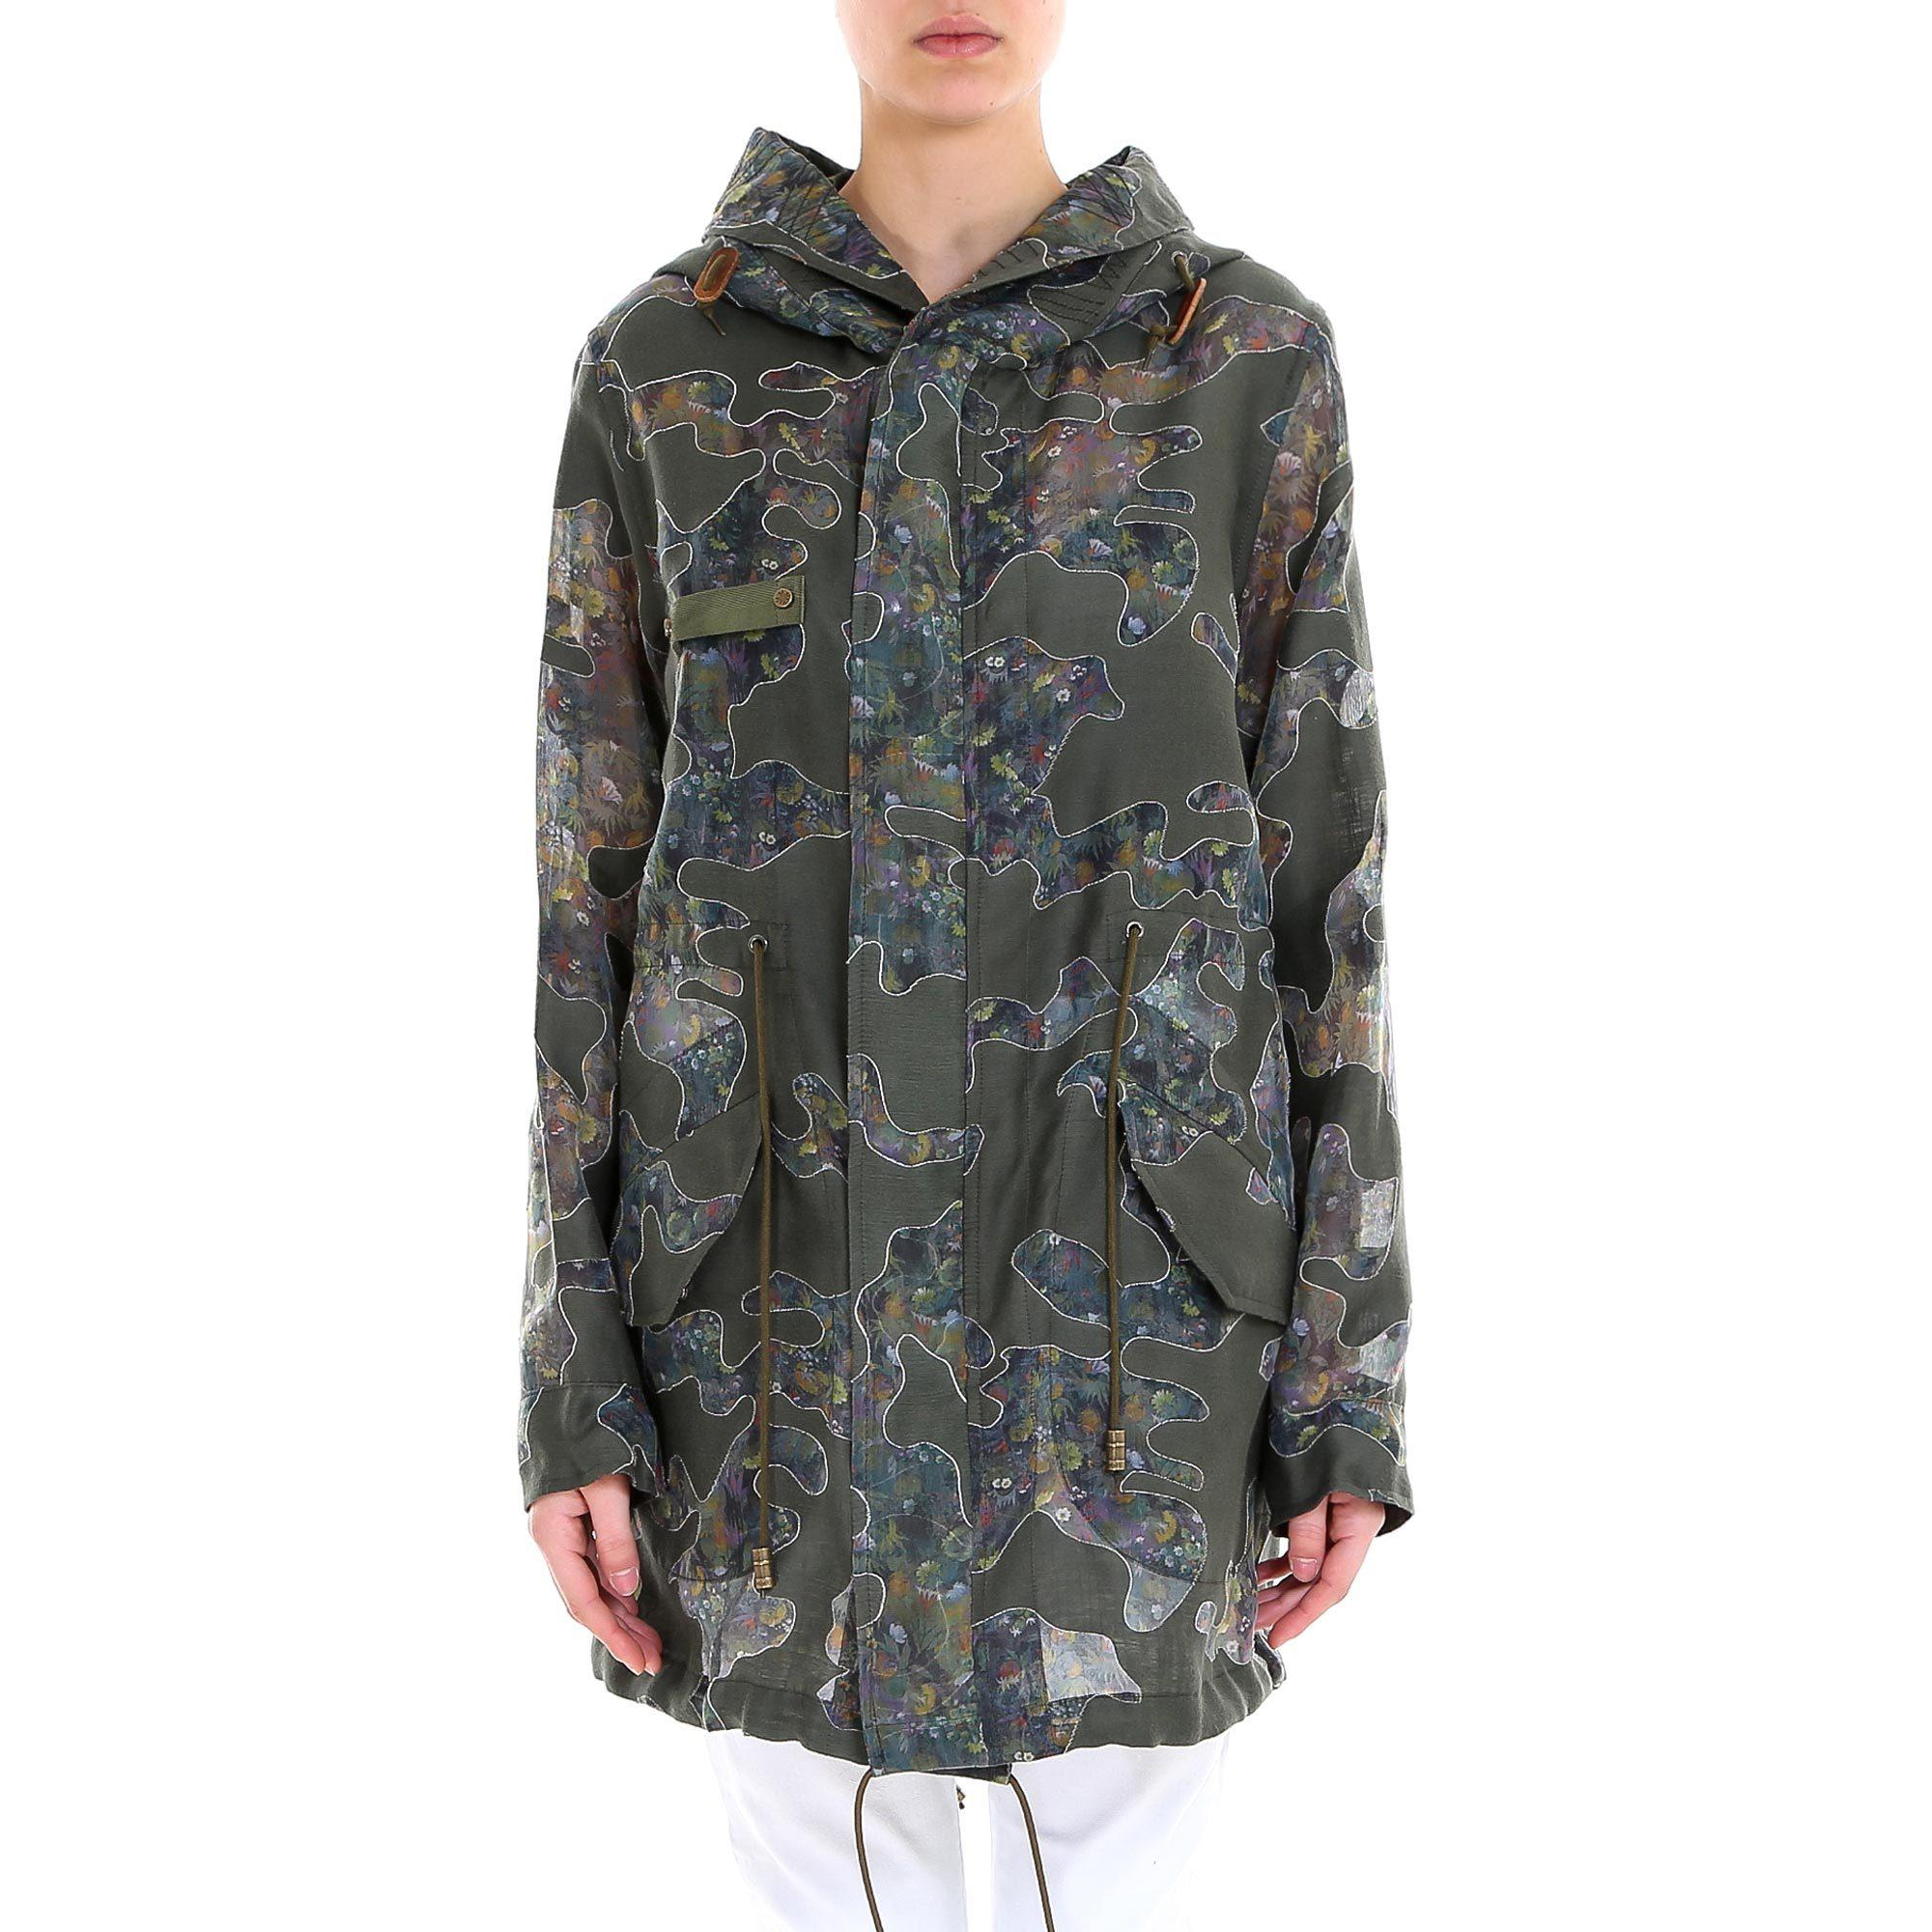 271b8b96395aa Lyst - Mr & Mrs Italy Camouflage Hooded Jacket in Green